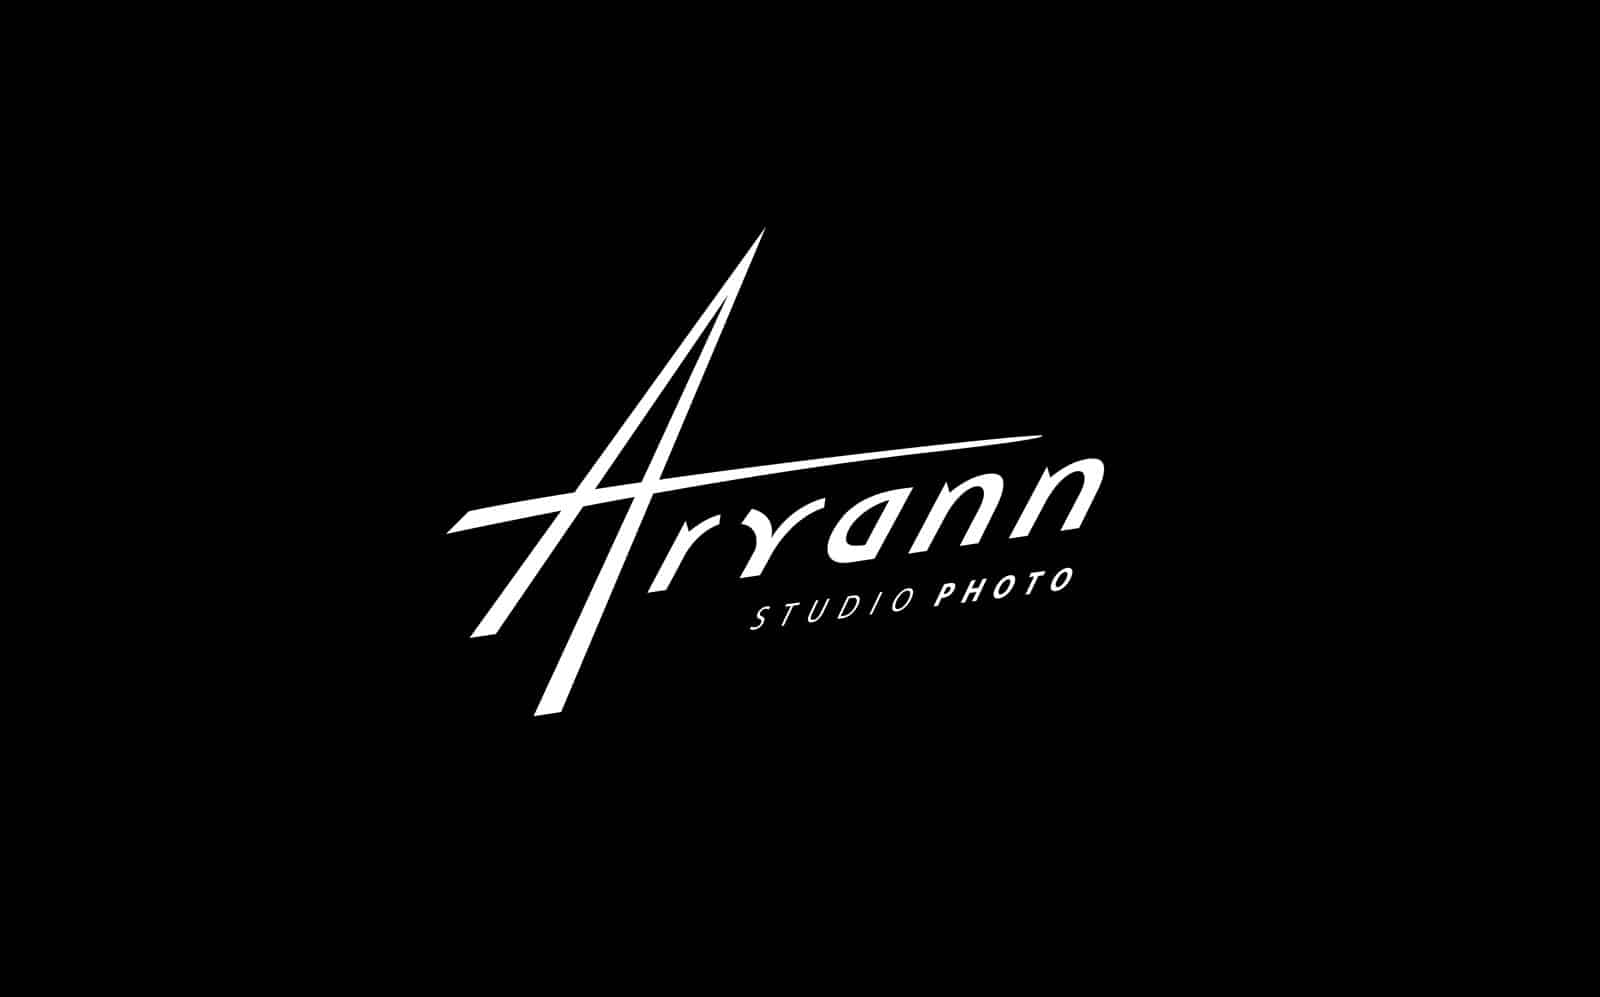 Logo Aryann studio photo